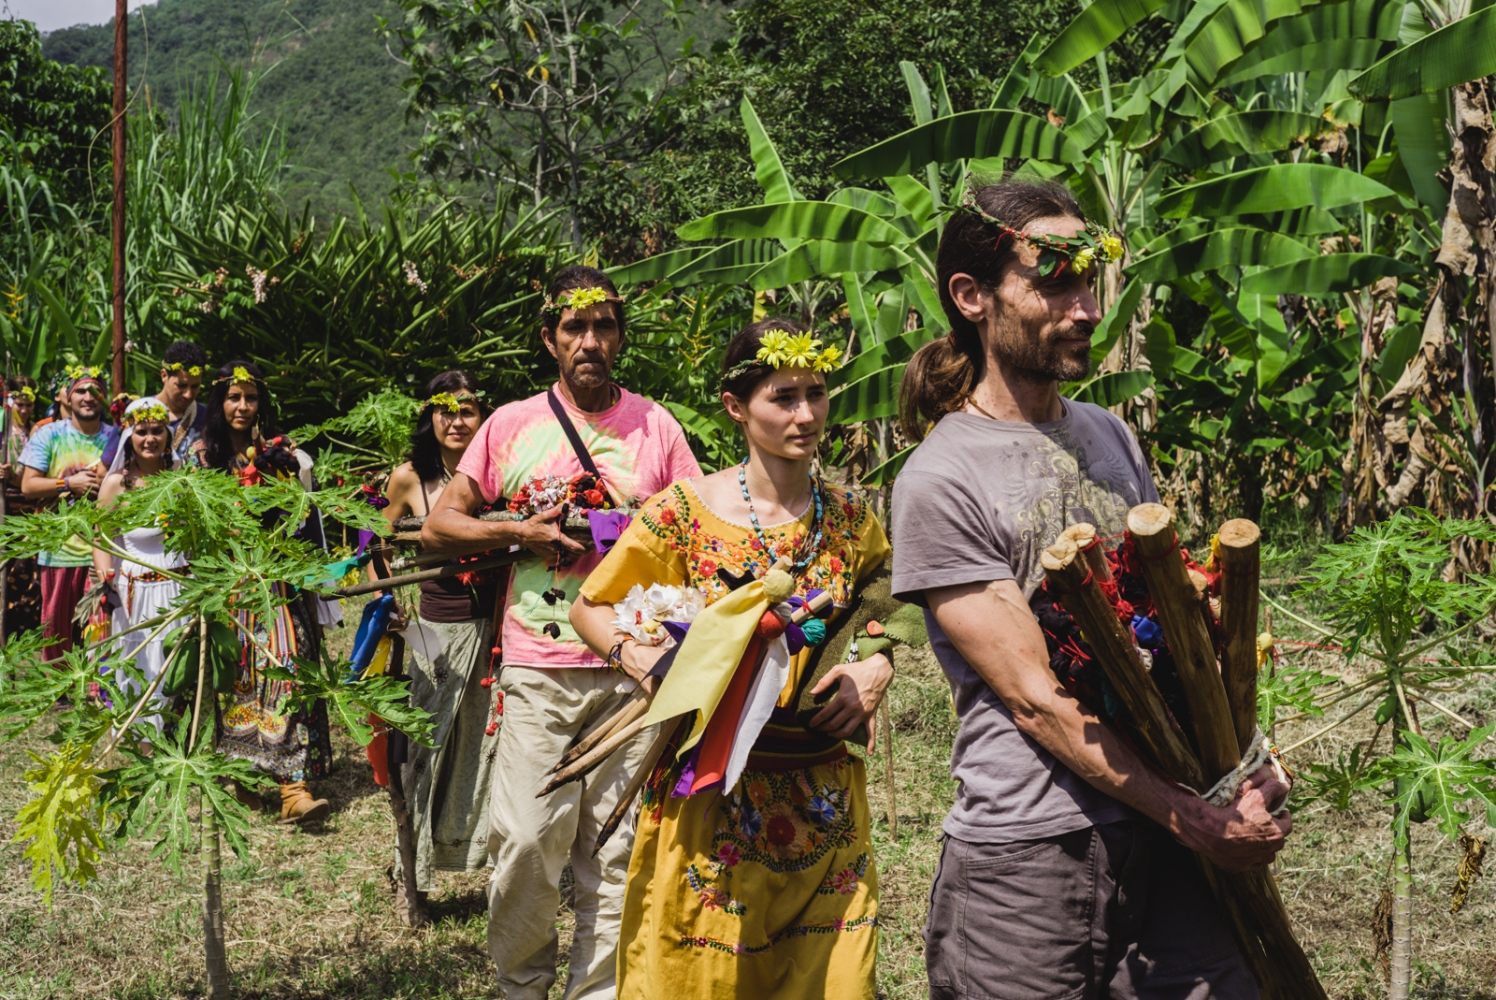 The visionaries return from questing and fasting 4 days in the mountain, bringing their prayer staffs and offerings to be burned to the fire.